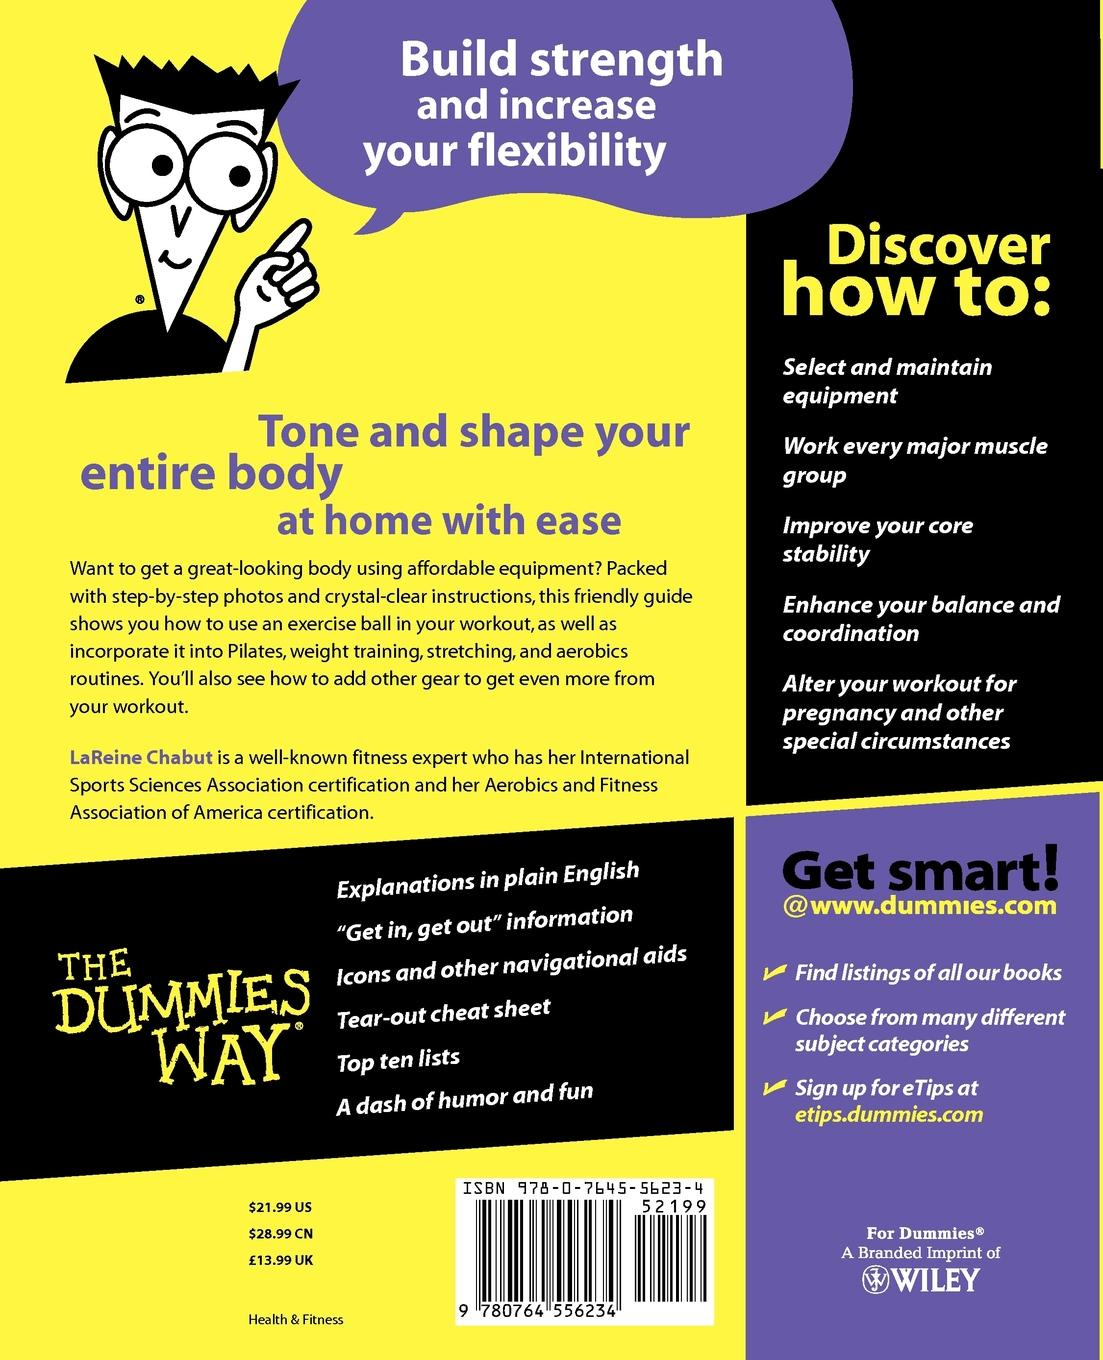 Chabut Exercise Balls For Dummies